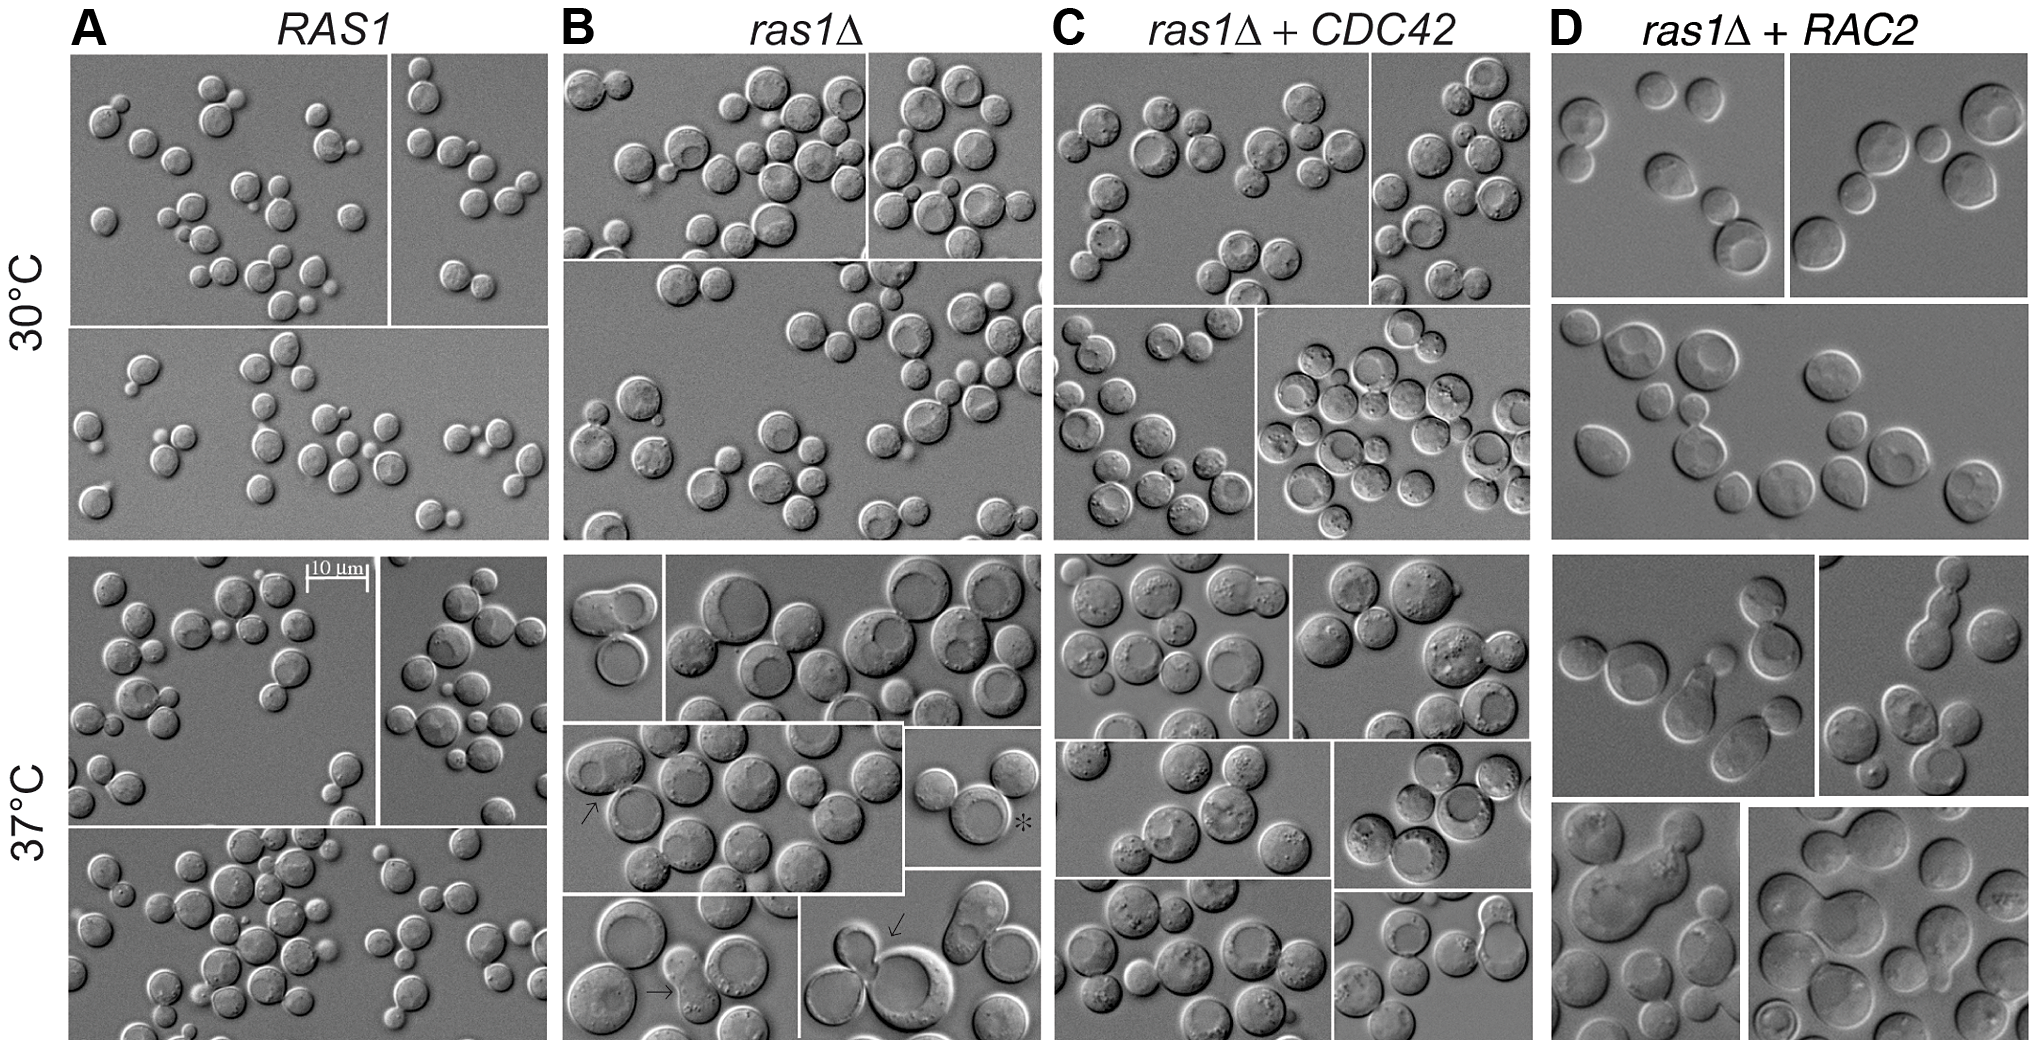 Yeast phase morphology of <i>C. neoformans</i> cells at 30 and 37°C after 4 hours.